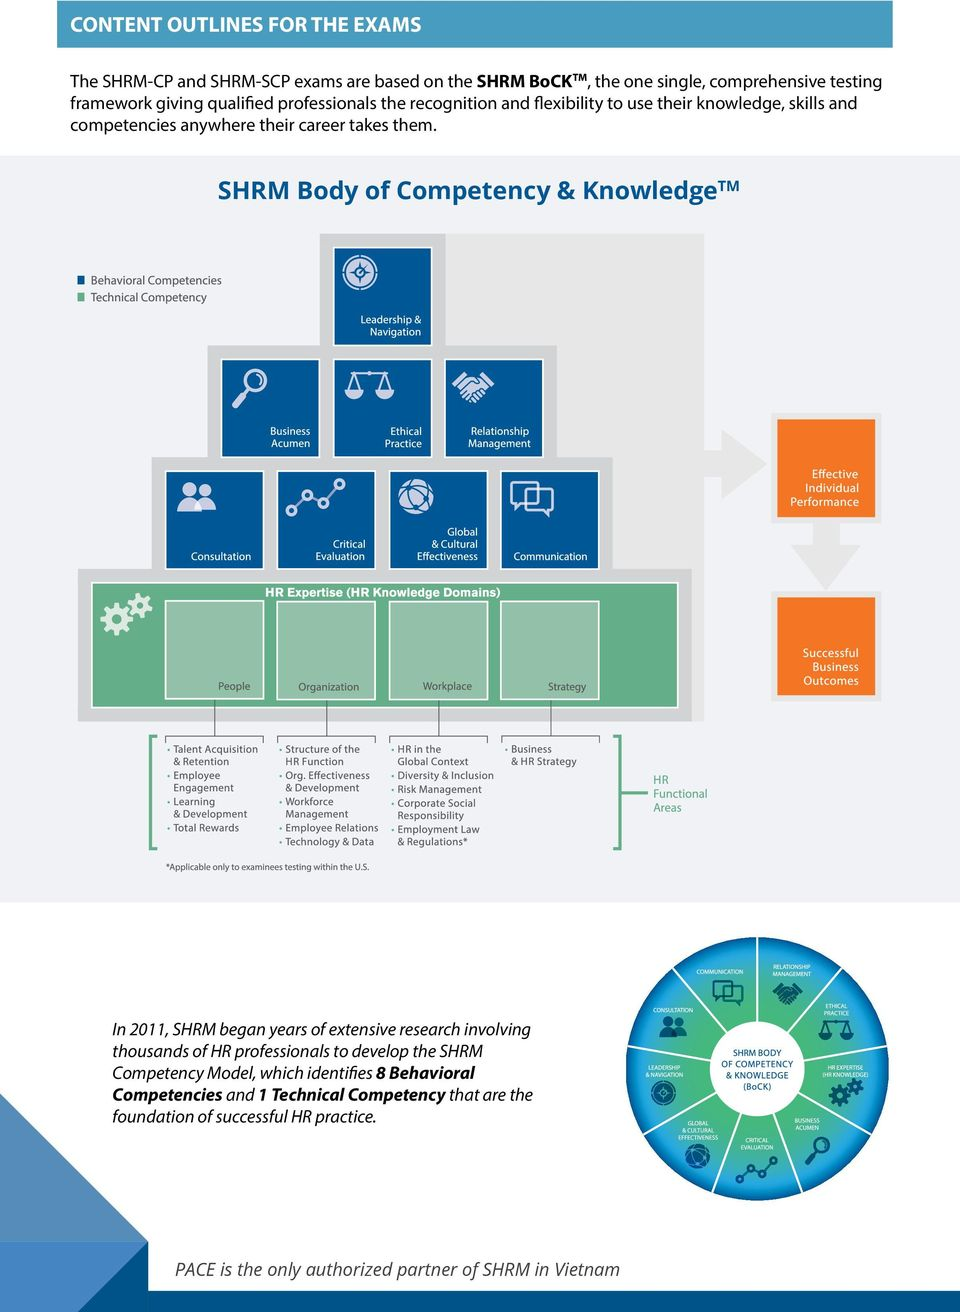 SHRM Body of Competency & Knowledge TM In 2011, SHRM began years of extensive research involving thousands of HR professionals to develop the SHRM